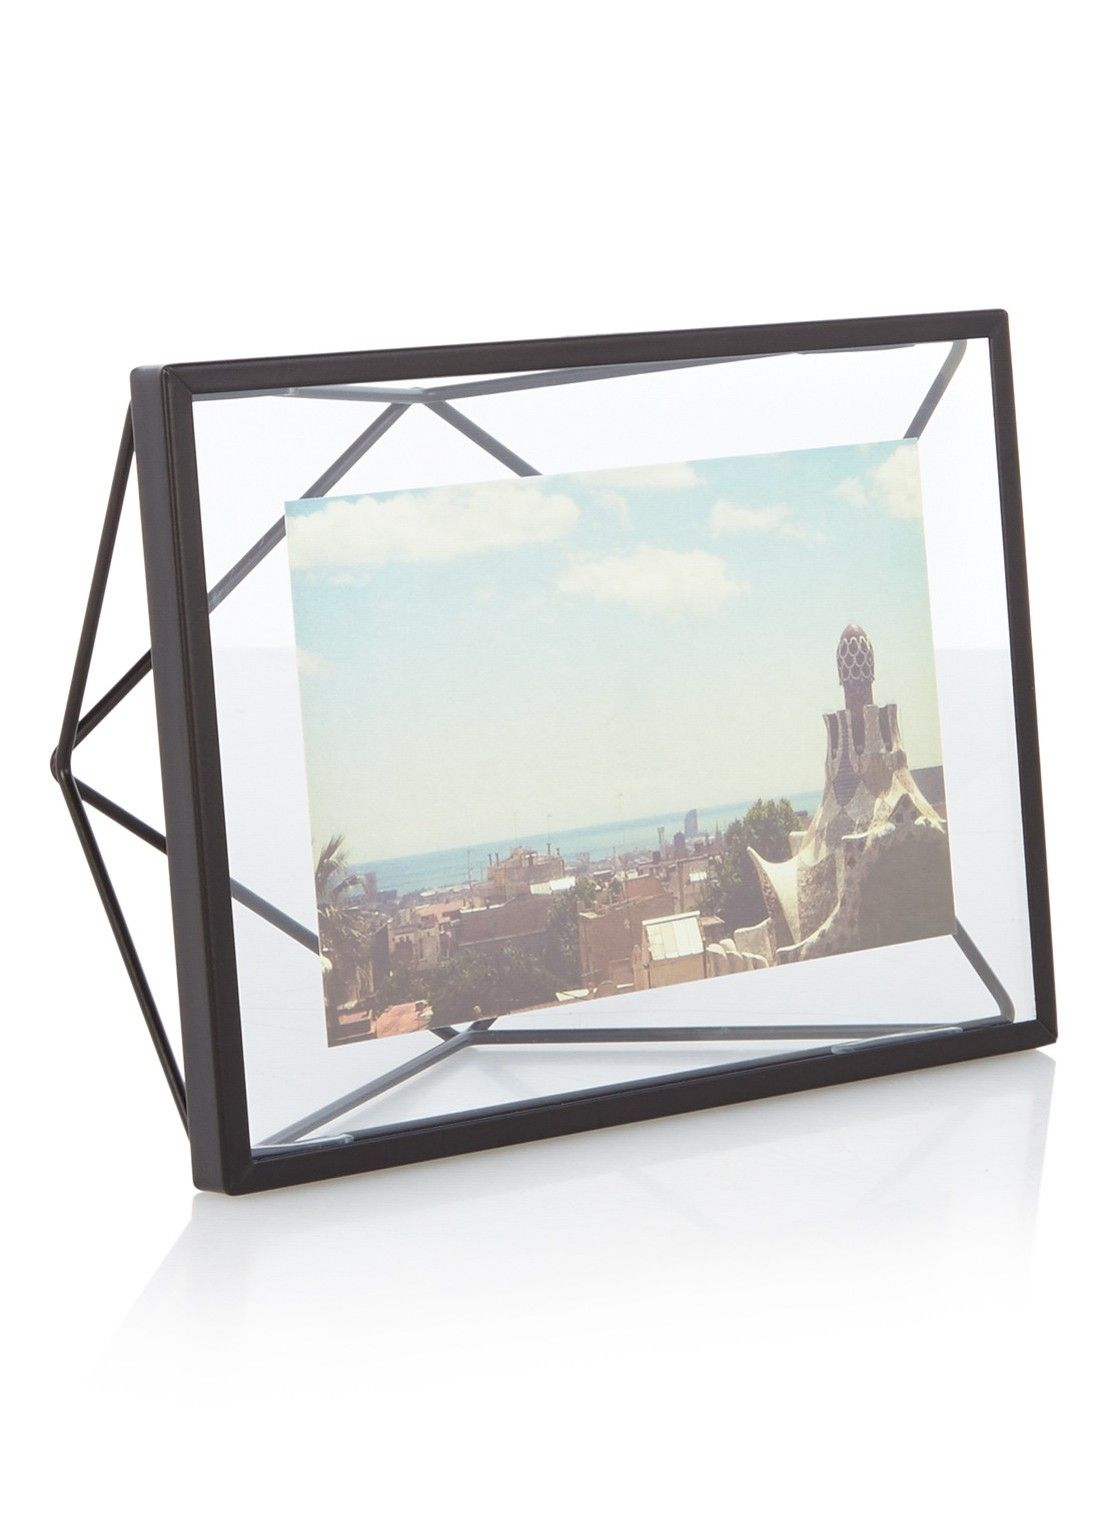 Umbra Prisma Fotolijst.Umbra My Home Cadre Photo Frame Home Decor